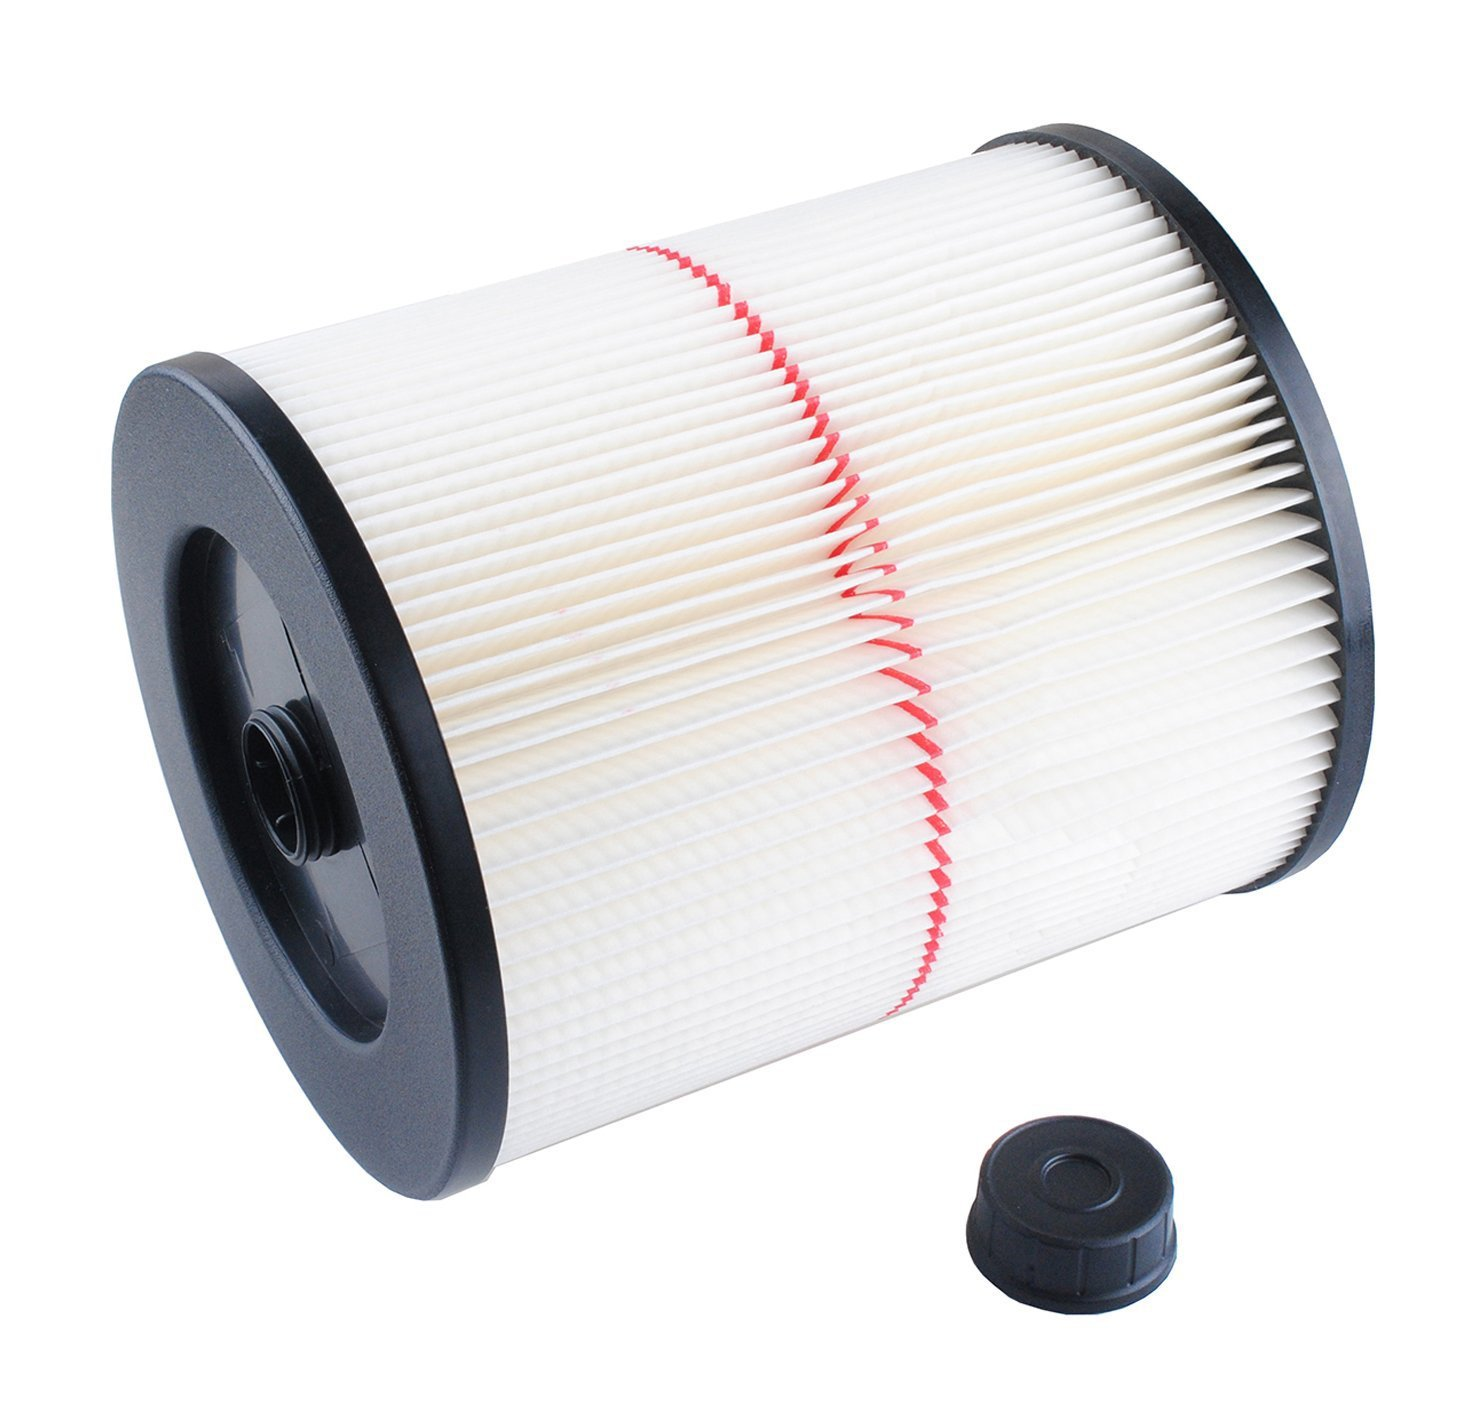 1pcs Filter for Shop Vac Filter Craftsman 17816, 9-17816 Replacement Wet Dry Vac Air Filter for Shop Vacuum Cleaner Parts мешки бумажные shop vac 20 30л 5шт 9066129